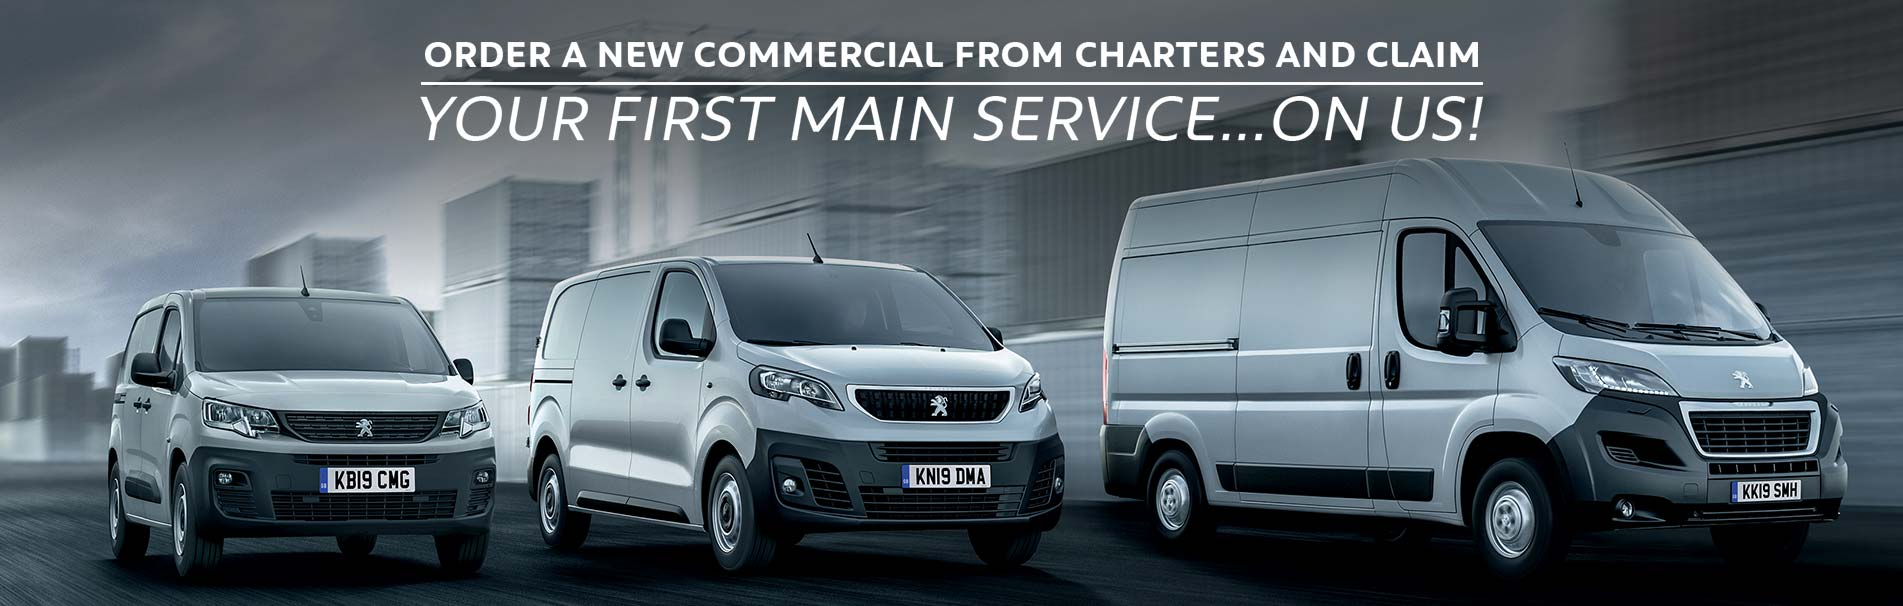 order-your-new-peugeot-lcv-receive-first-main-service-free-sli